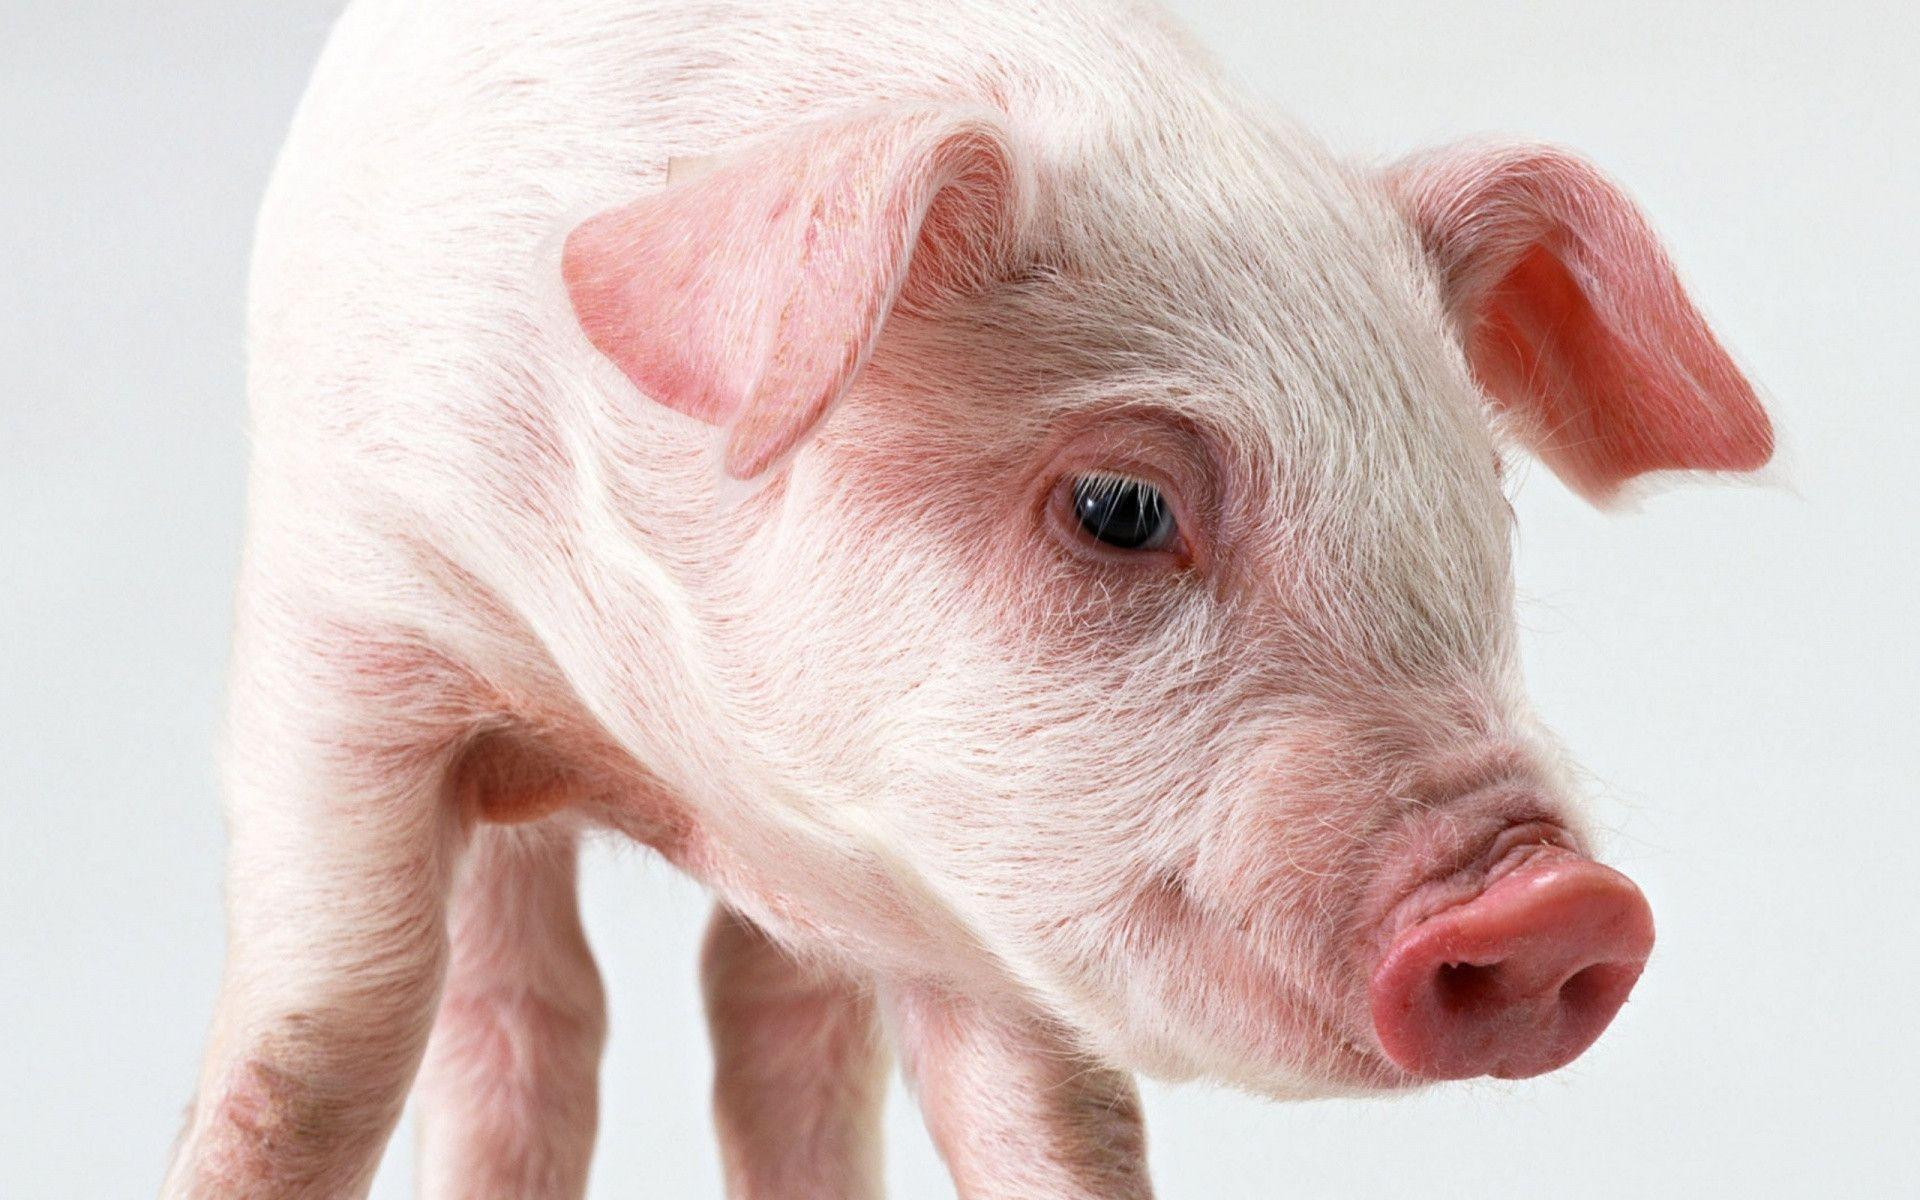 Pig Wallpapers - Full HD wallpaper search - page 3